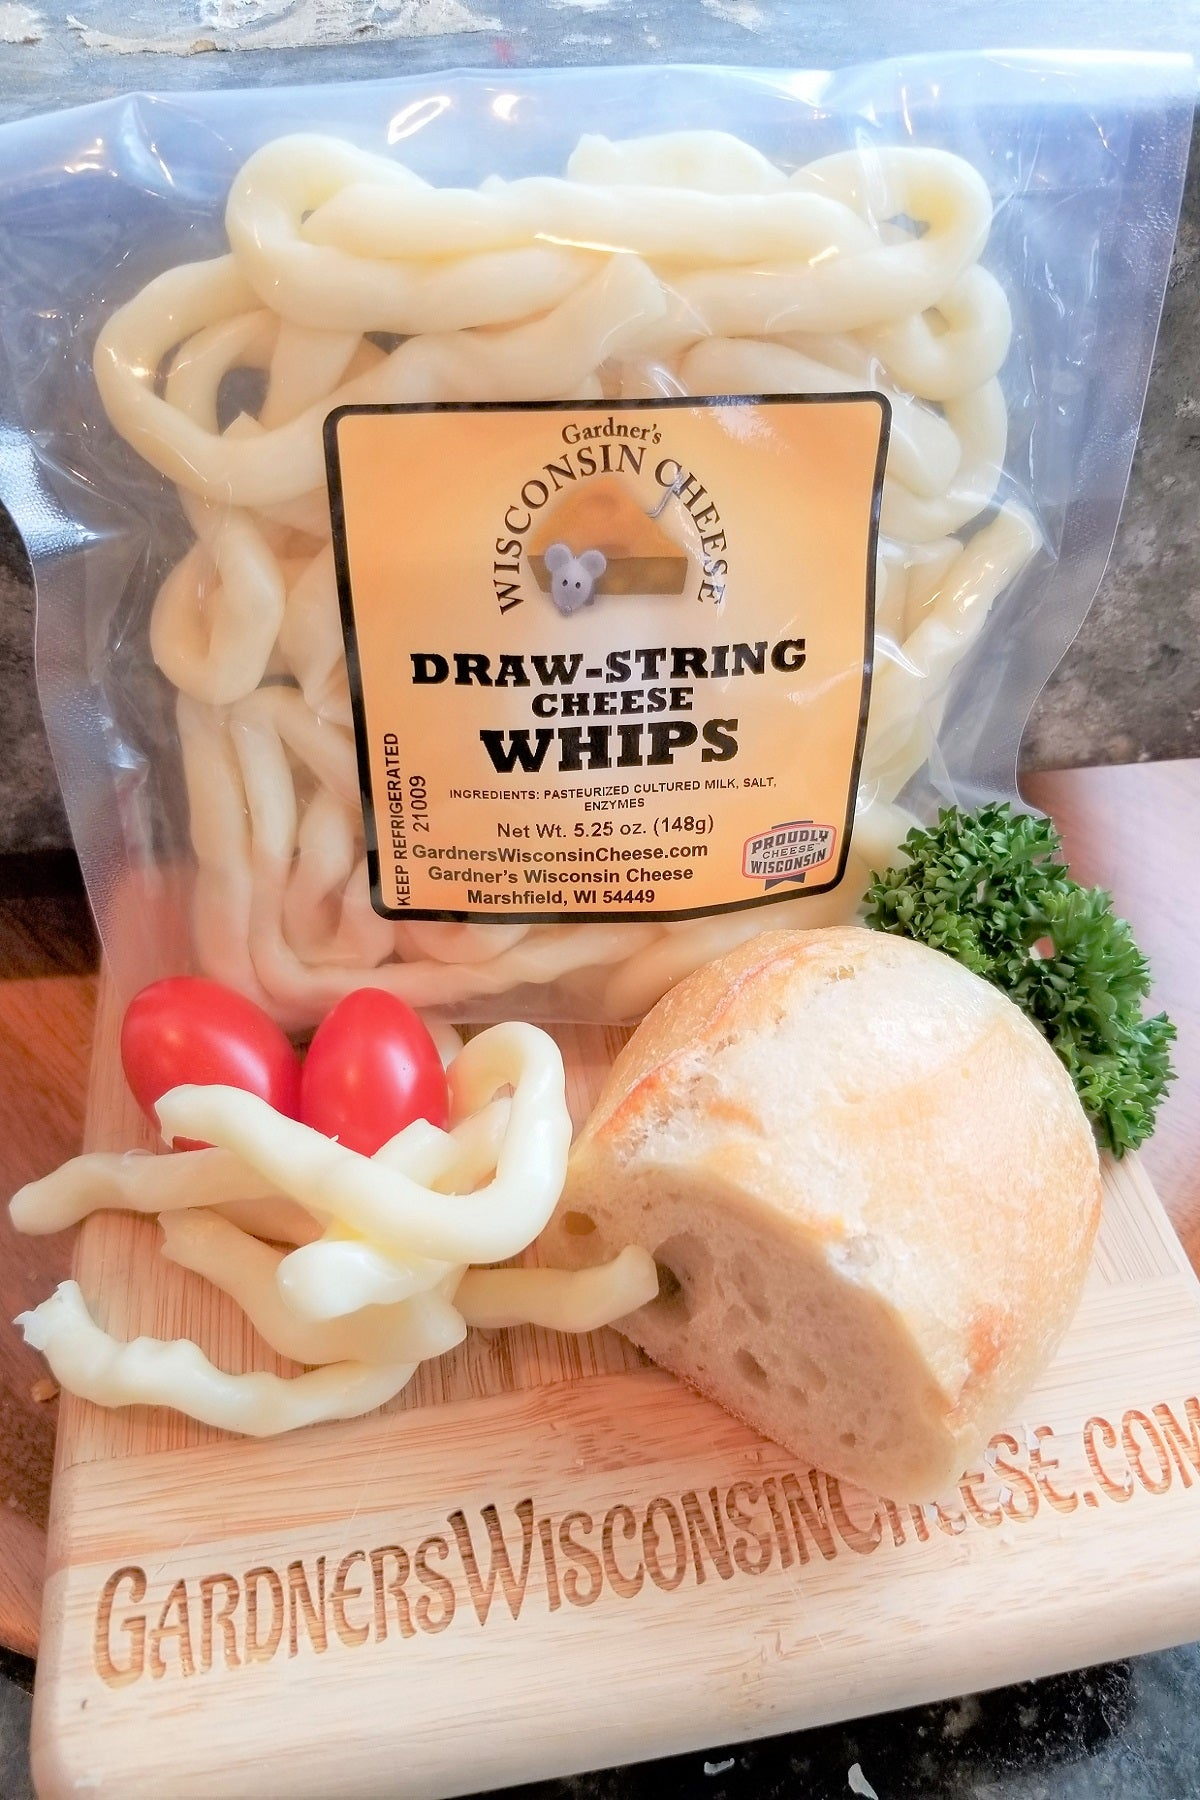 Draw-String-Cheese Whips